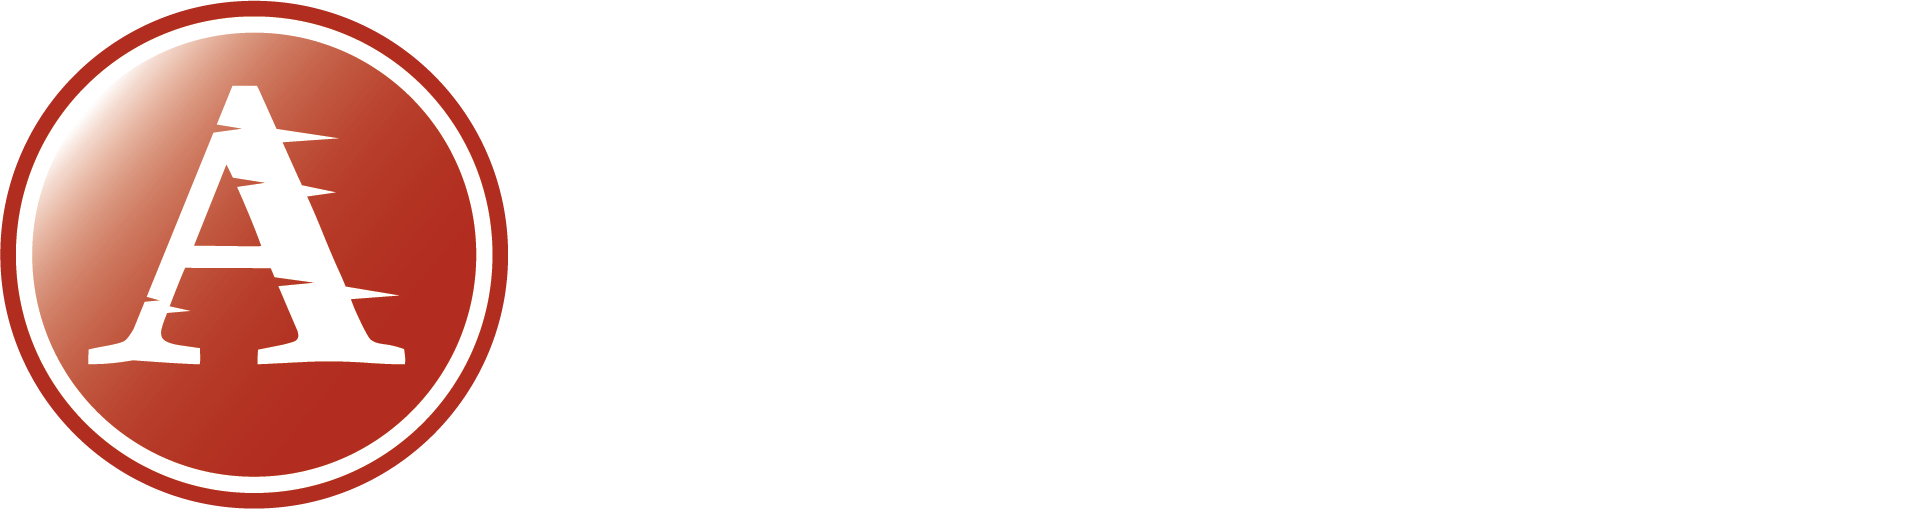 Aristocrat Motors Lee's Summit logo